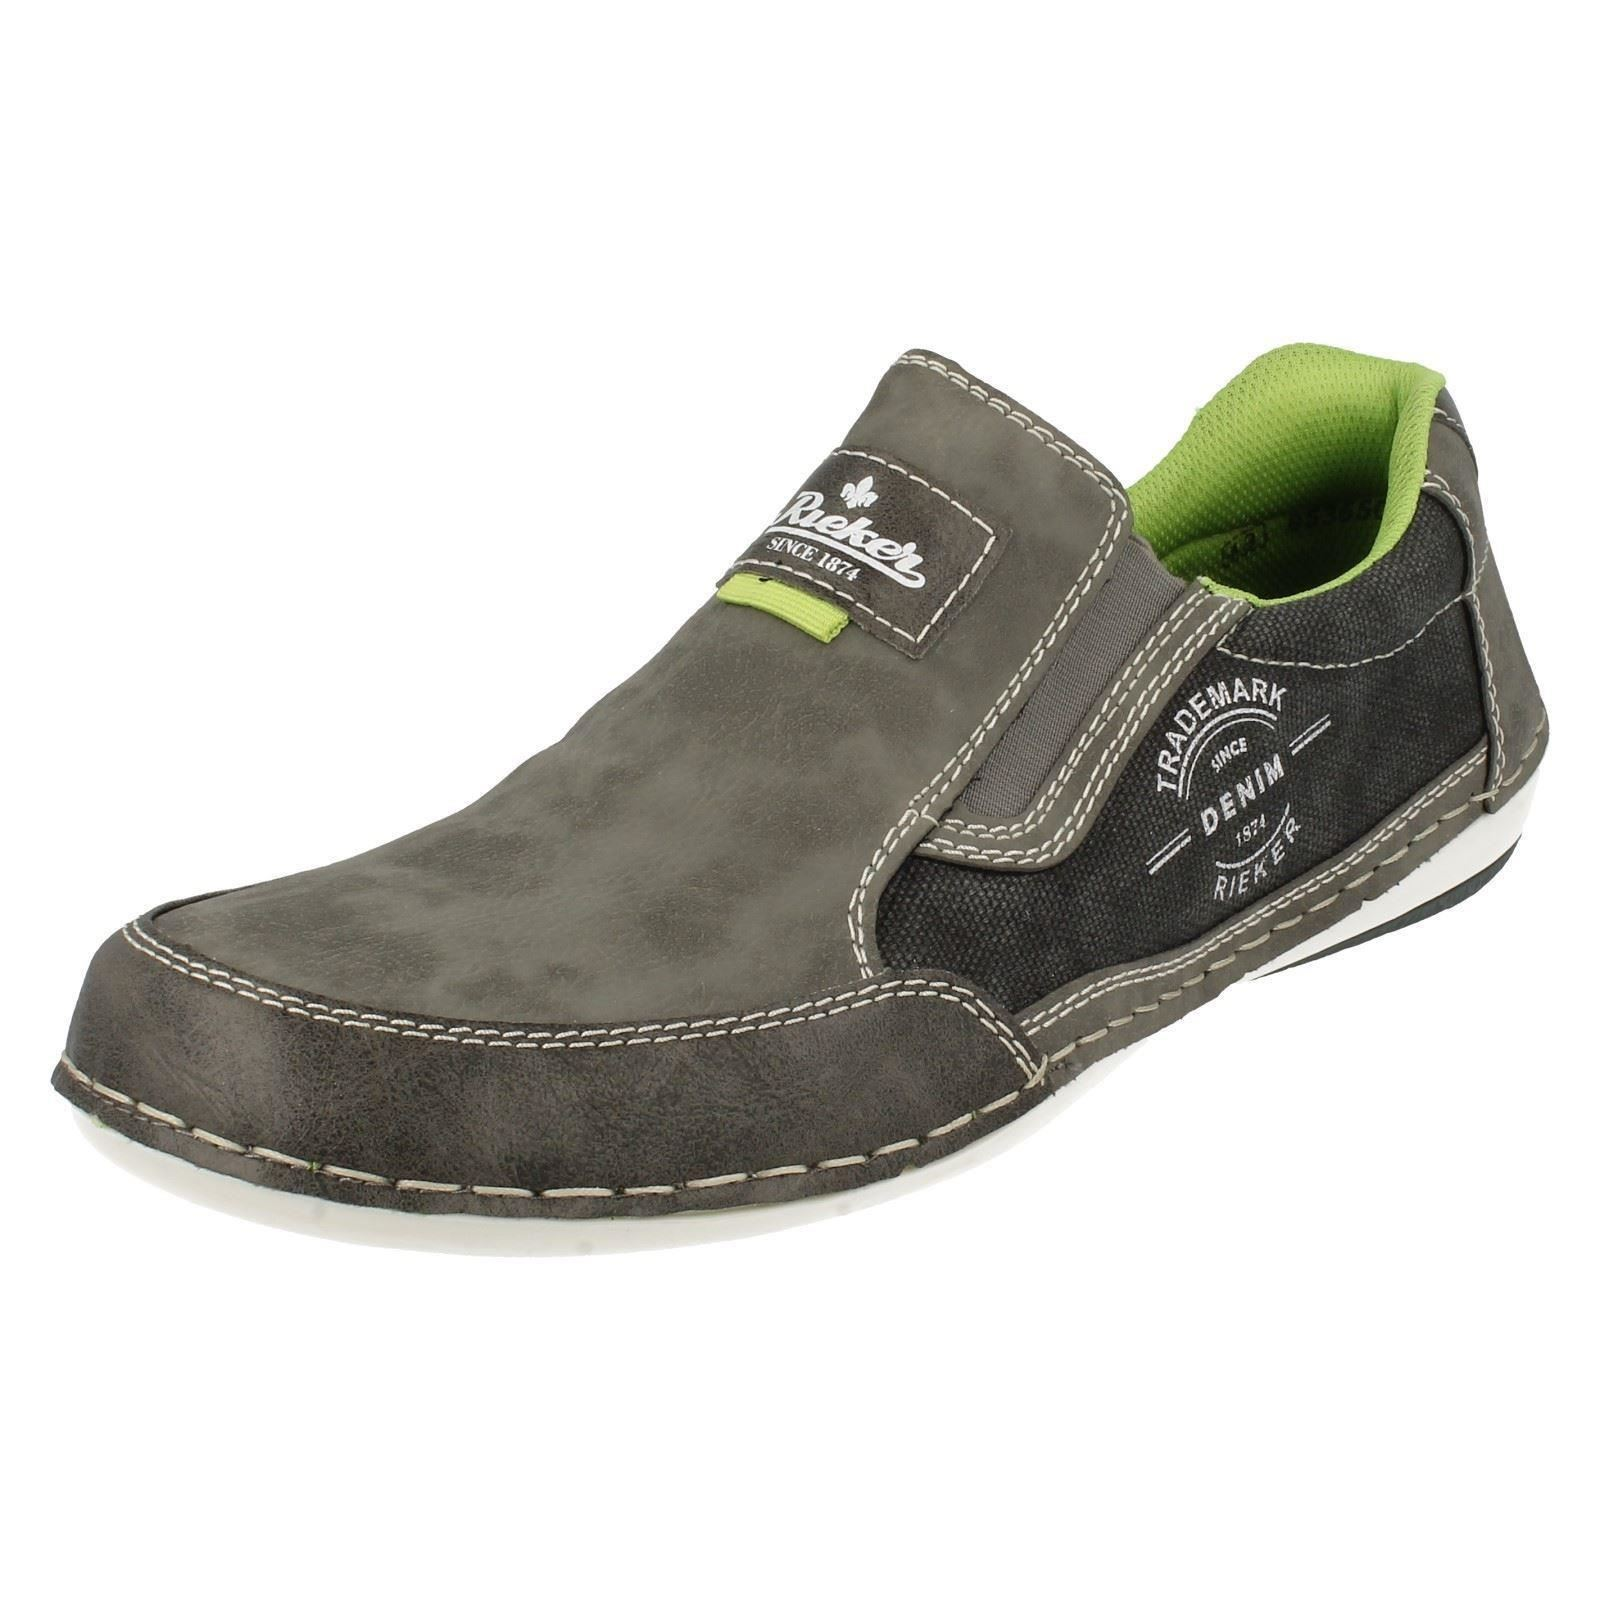 Uomo - Rieker Casual Schuhes Style - Uomo B9251 d24521